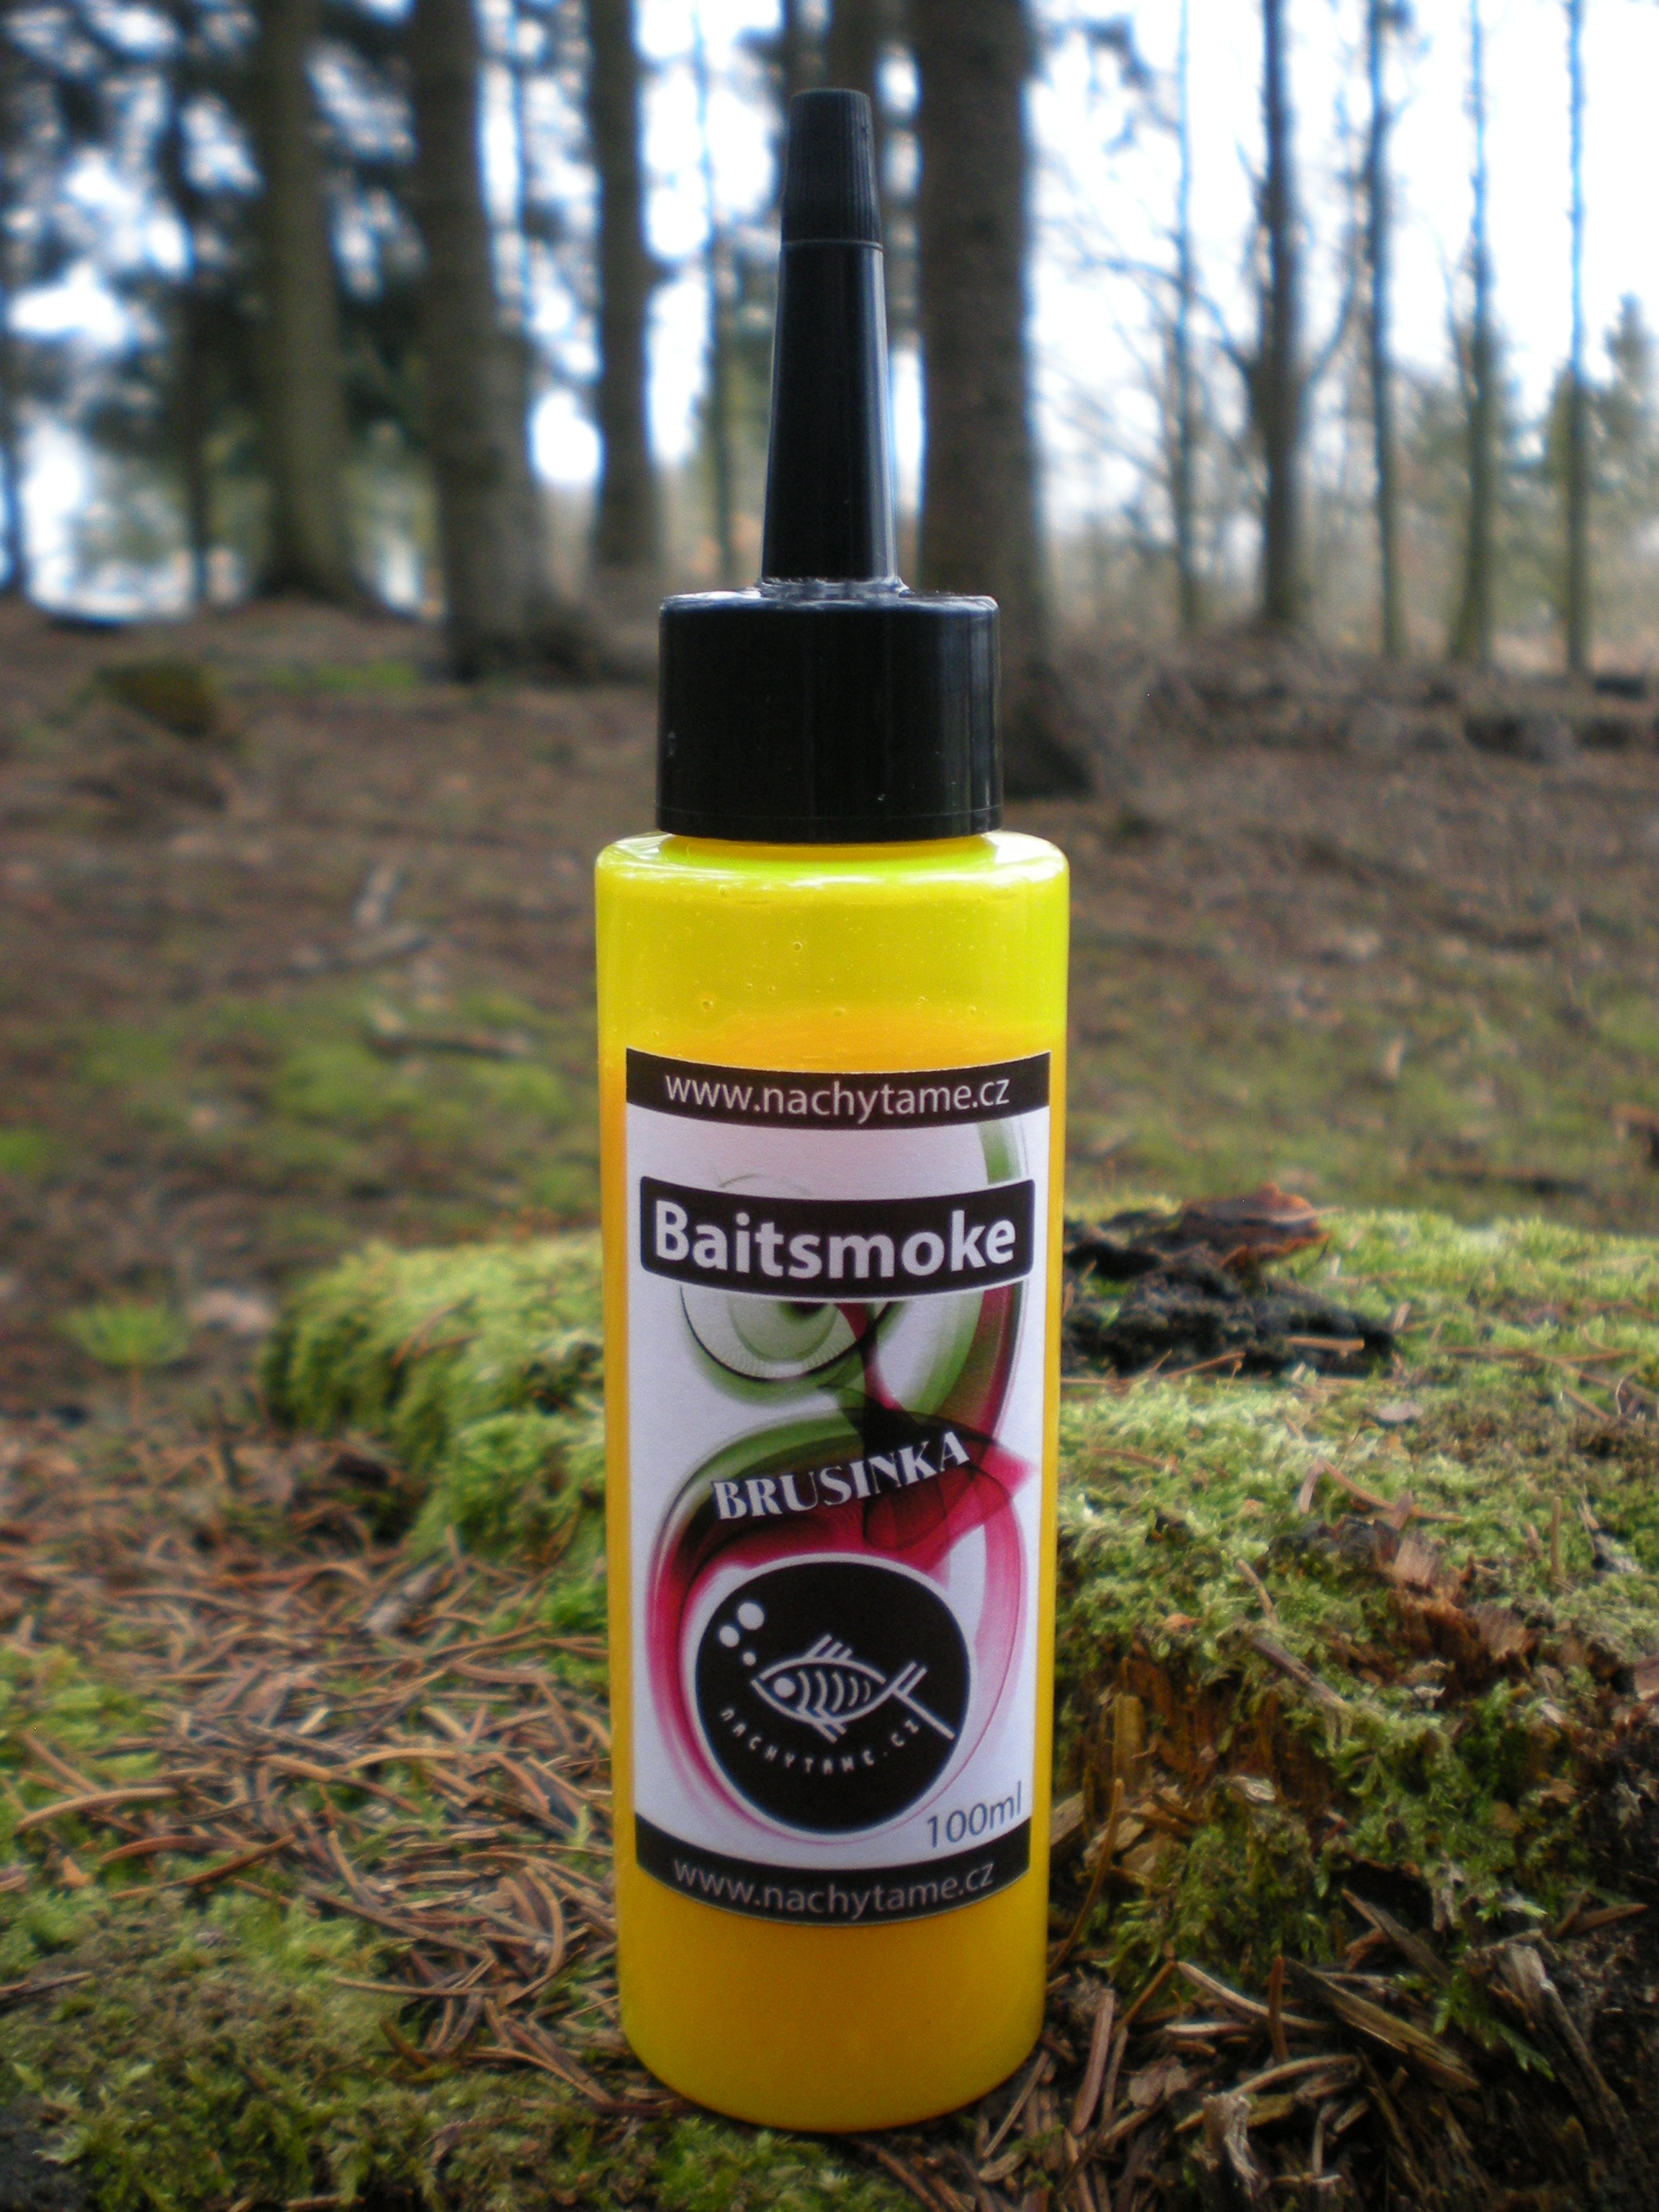 Baitsmoke Brusinka 100ml